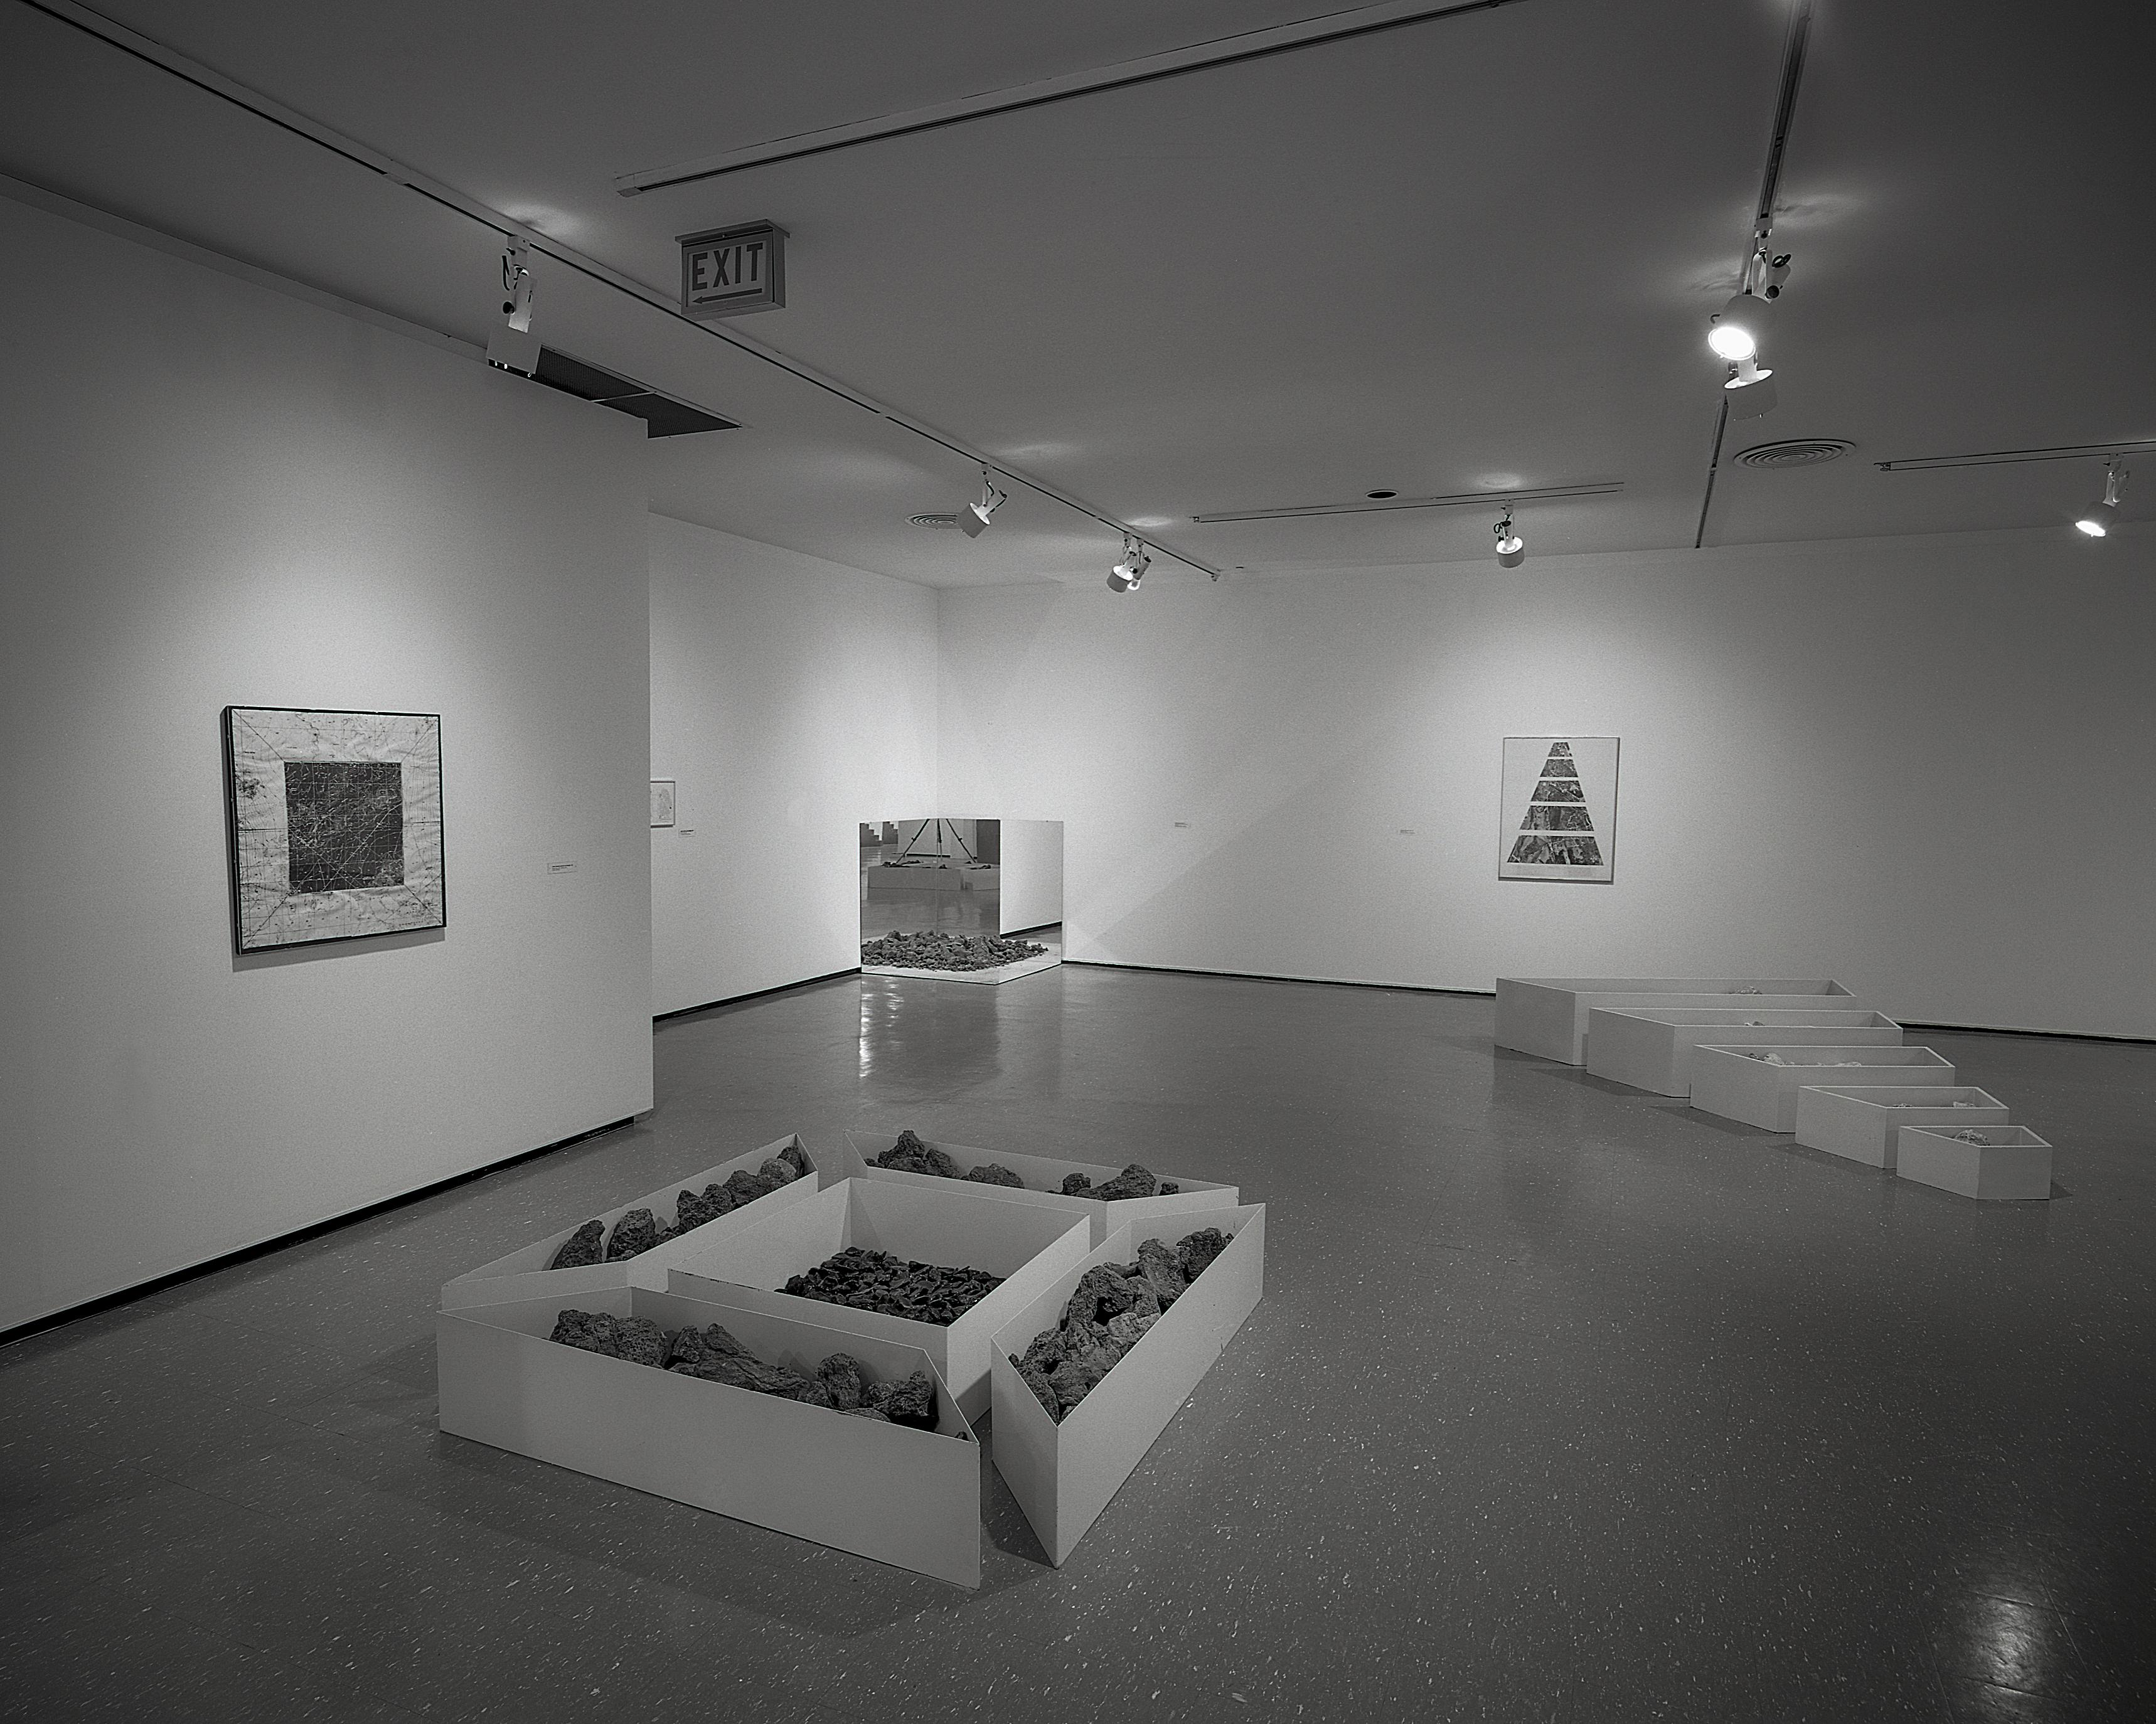 A black-and-white installation view shows photographs and sculptures made of geometric containers filled with stones.